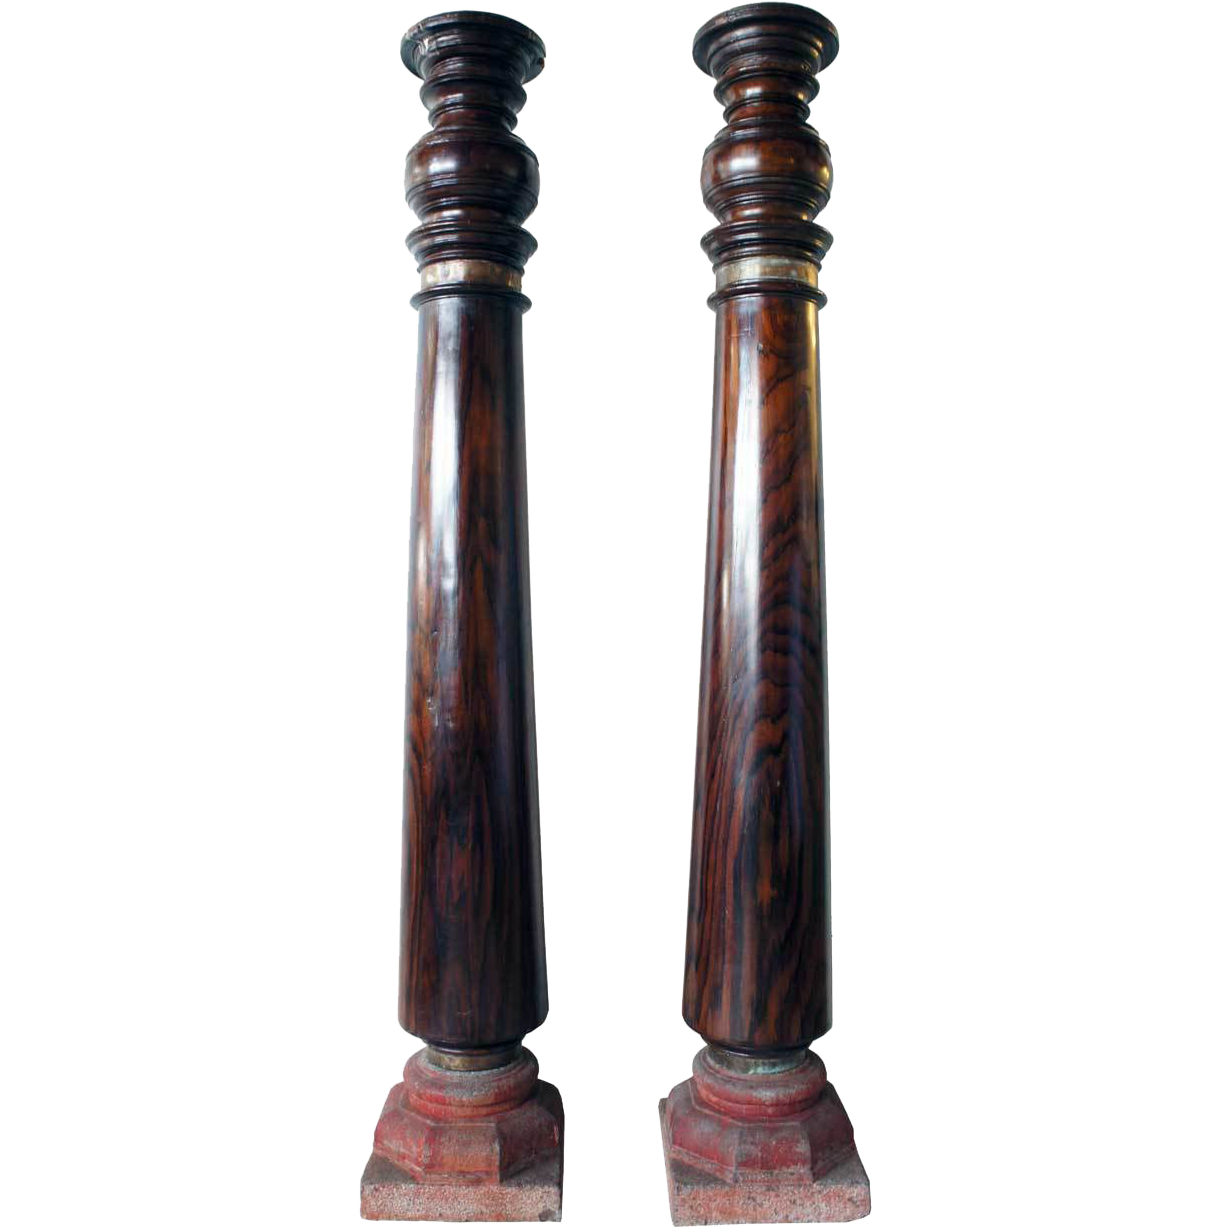 Pair of Indian Kerala Rosewood and Granite Base Columns